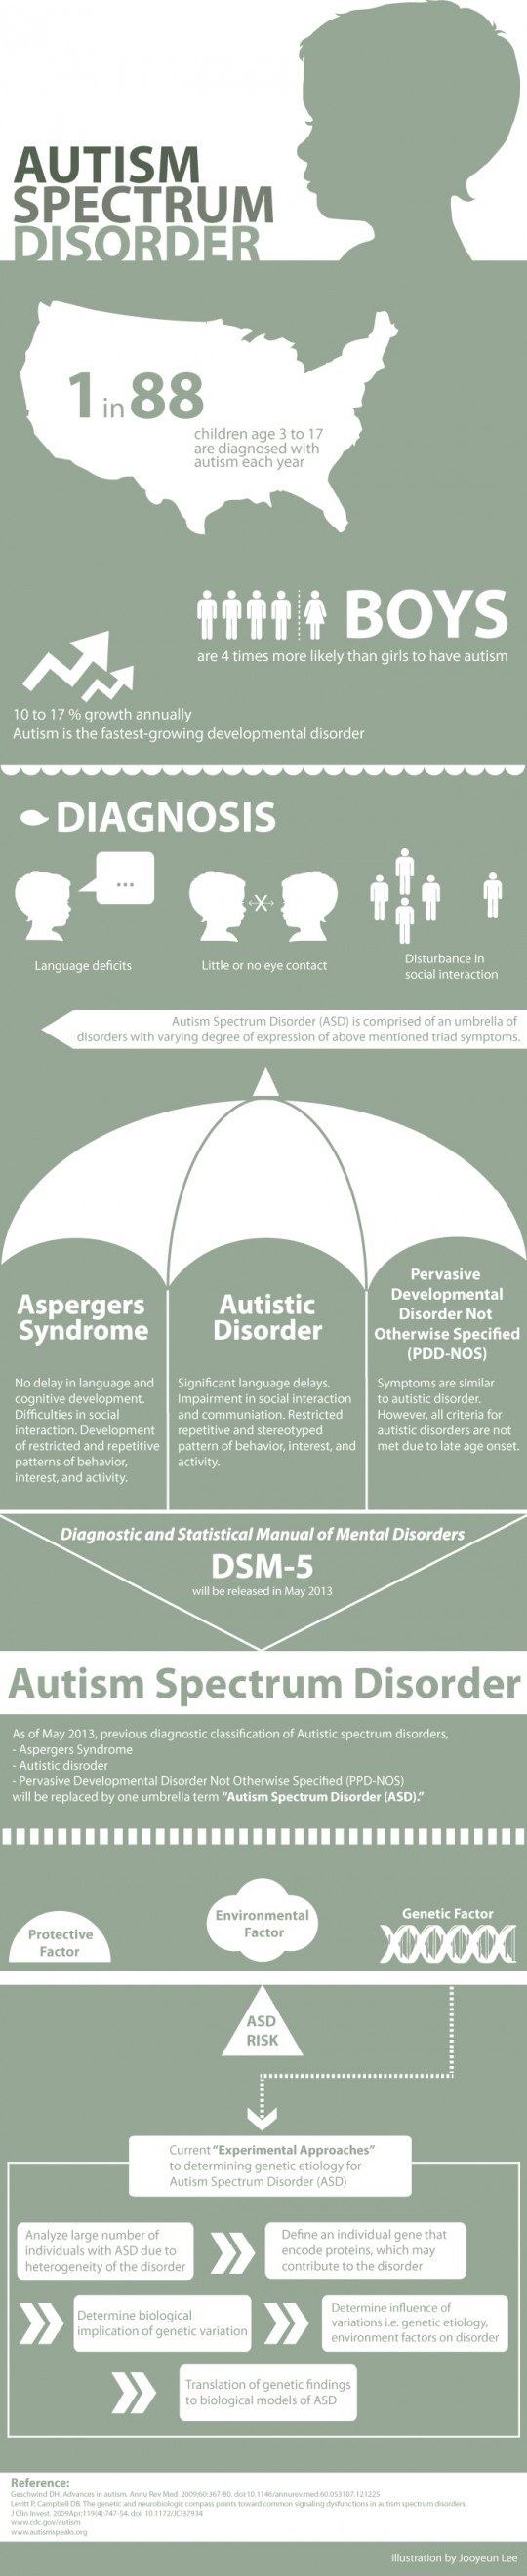 autism spectrum disorder in the US - informative sheet